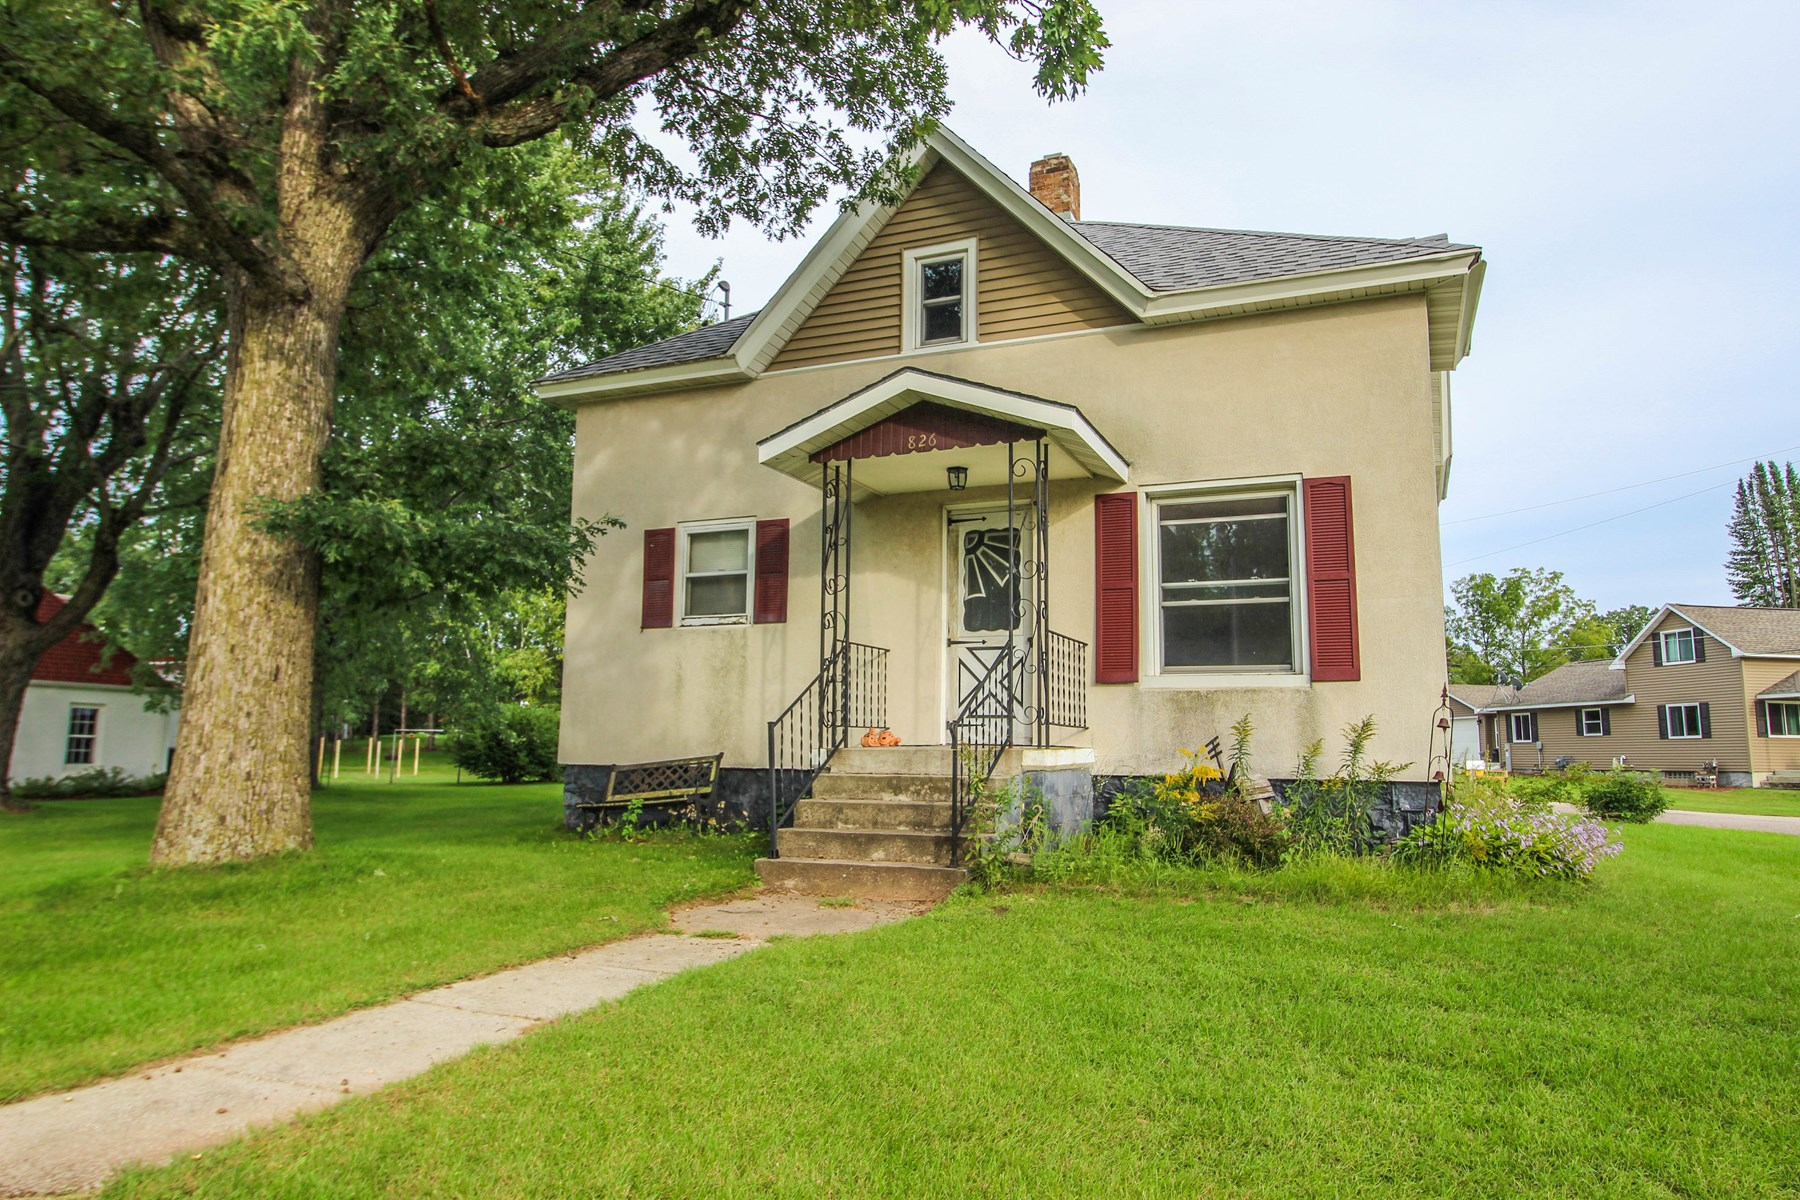 Home for Sale in Manawa, WI